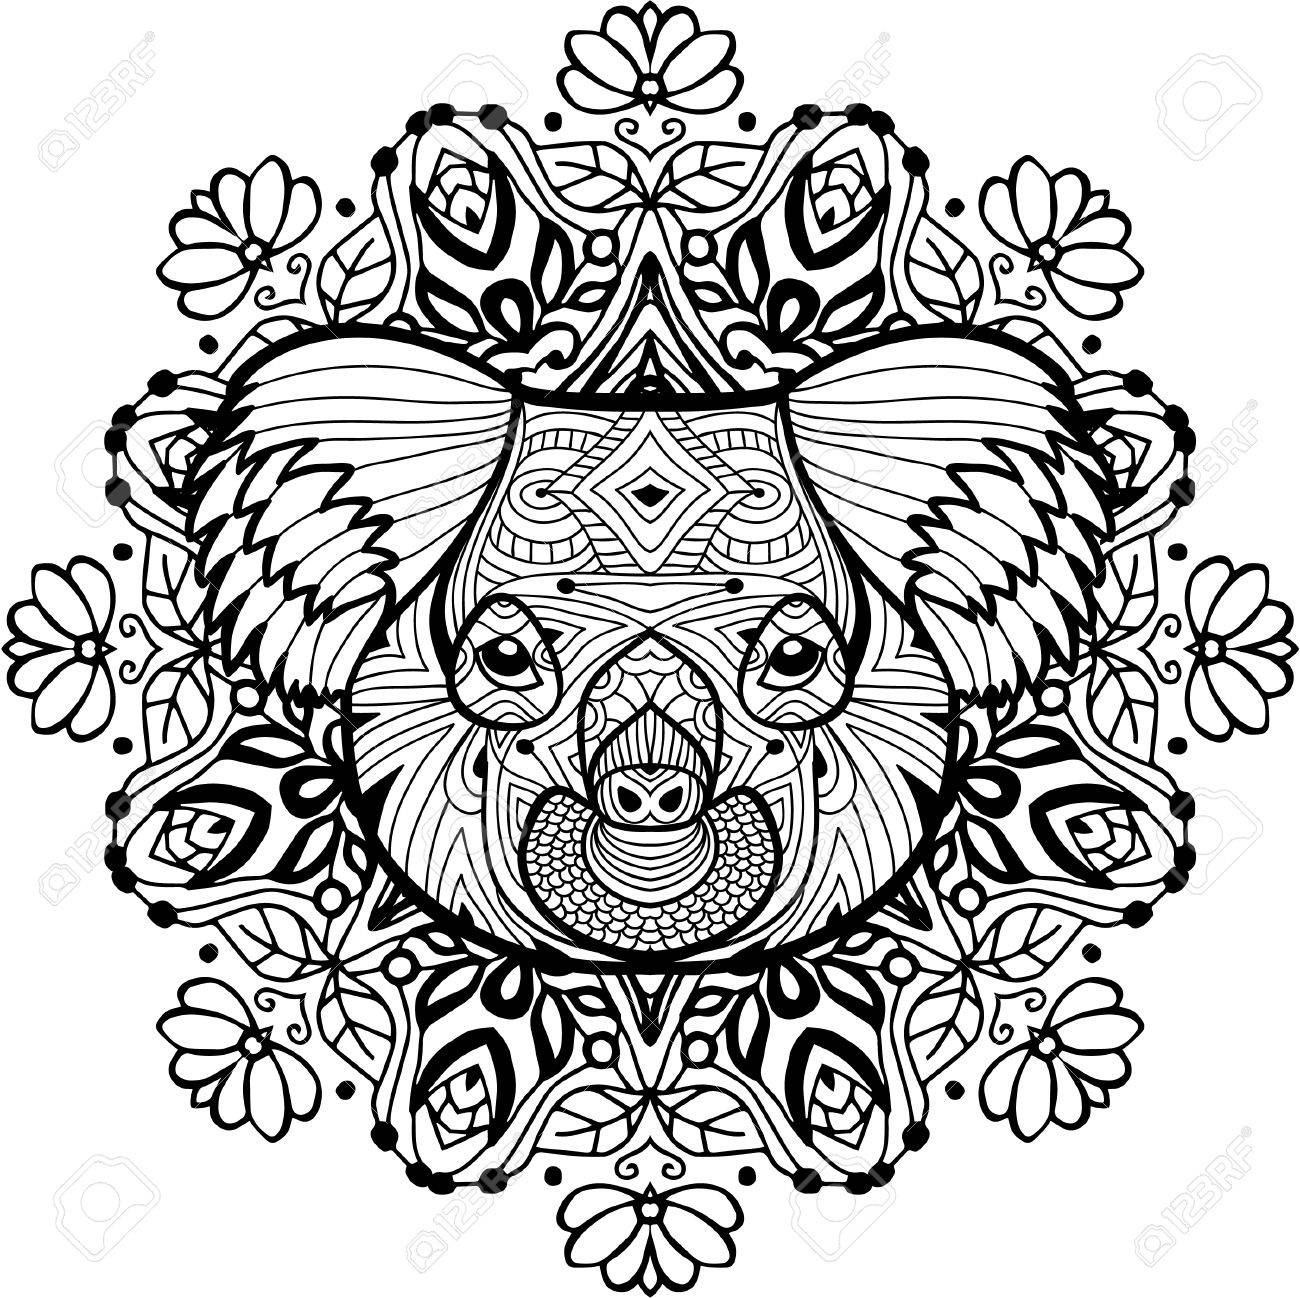 The Head Of The Koala On The Background Of Ethnic Patterns Totem